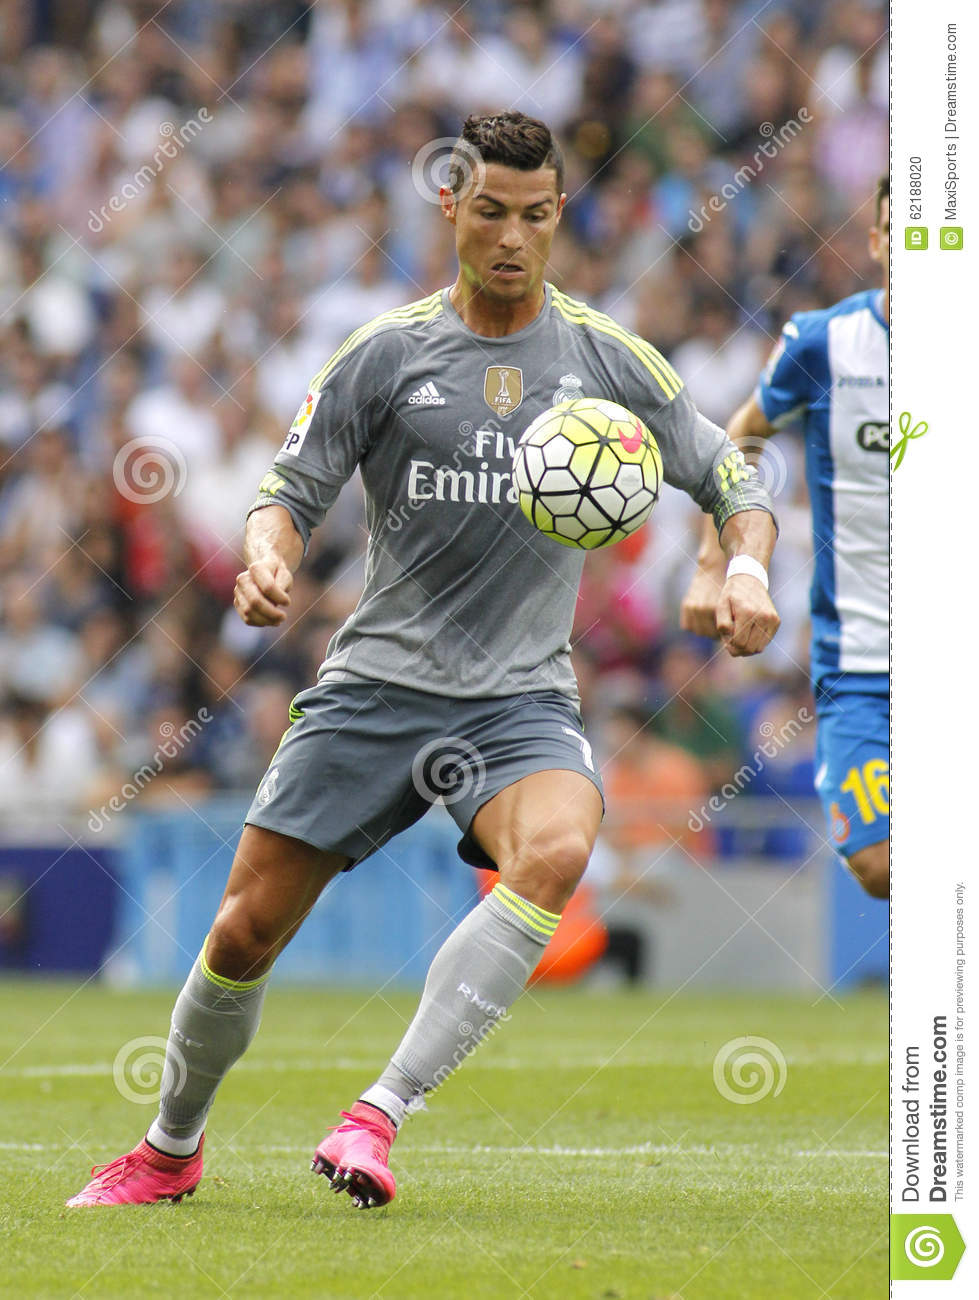 6734e2893 Cristiano Ronaldo of Real Madrid during a Spanish League match against RCD Espanyol  at the Power8 stadium on September 12 2015 in Barcelona Spain